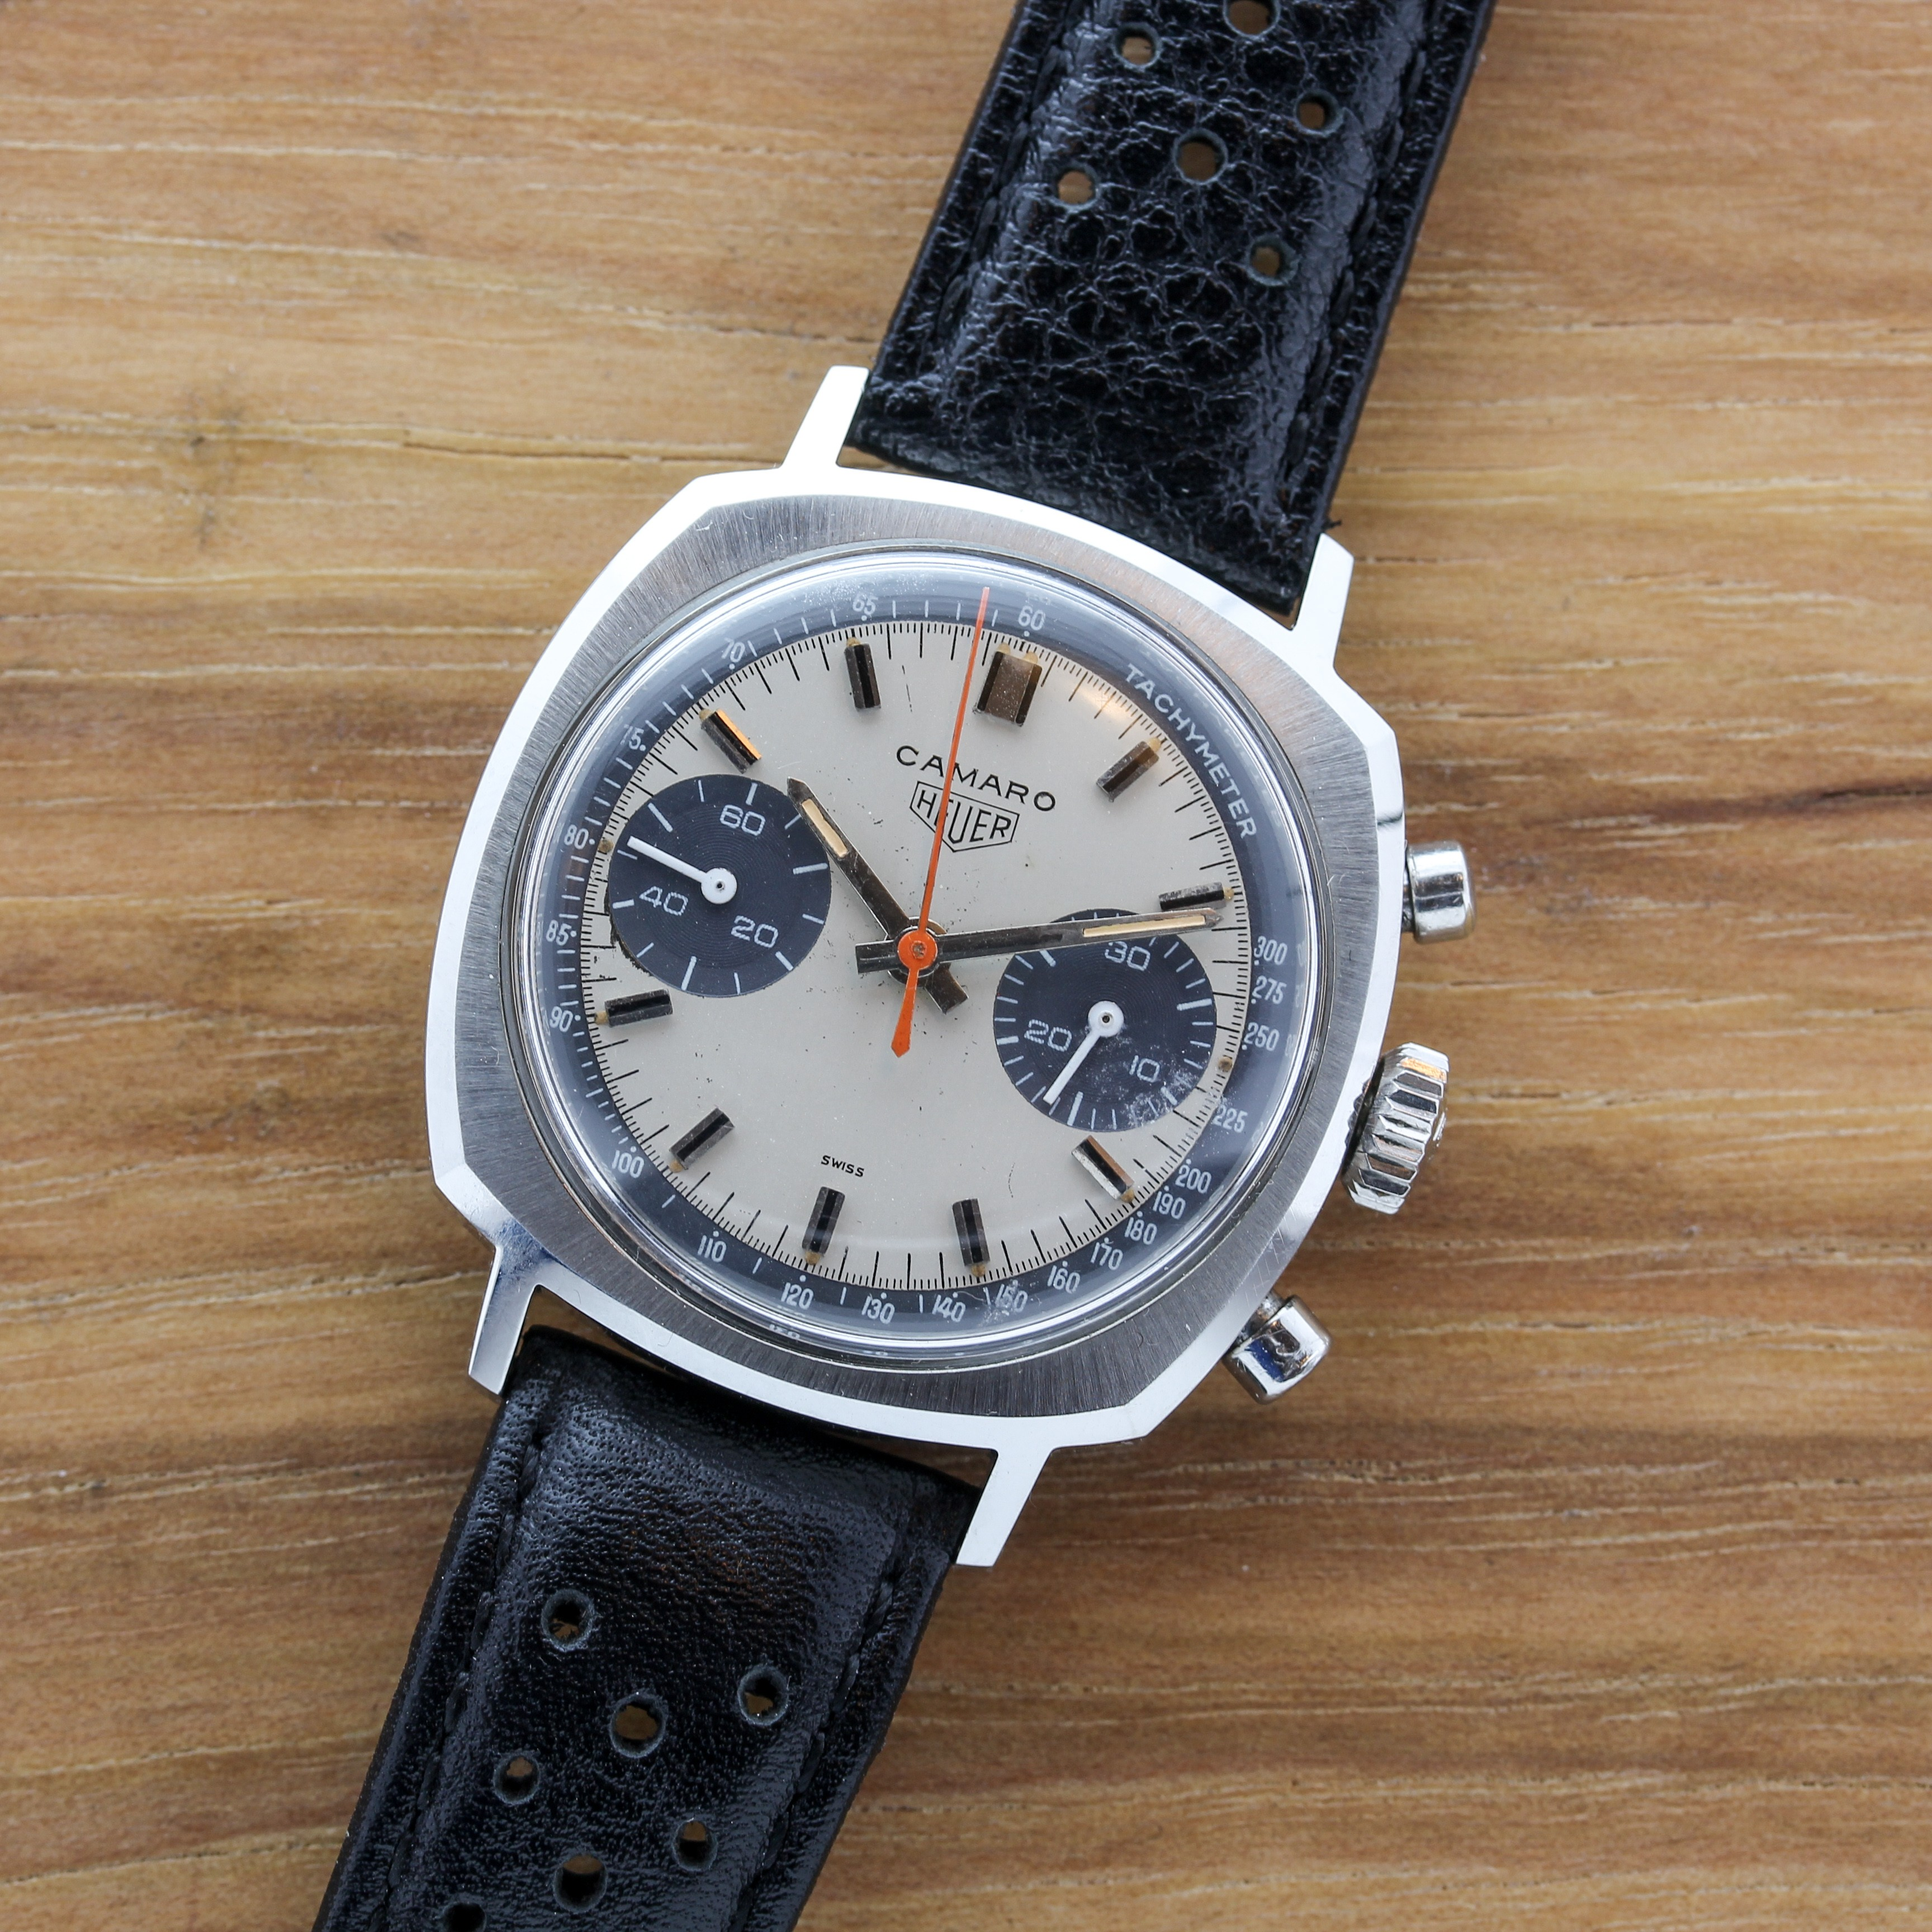 STAINLESS STEEL HEUER CAMARO CHRONOGRAPH WITH EXOTIC DIAL AND STRAP